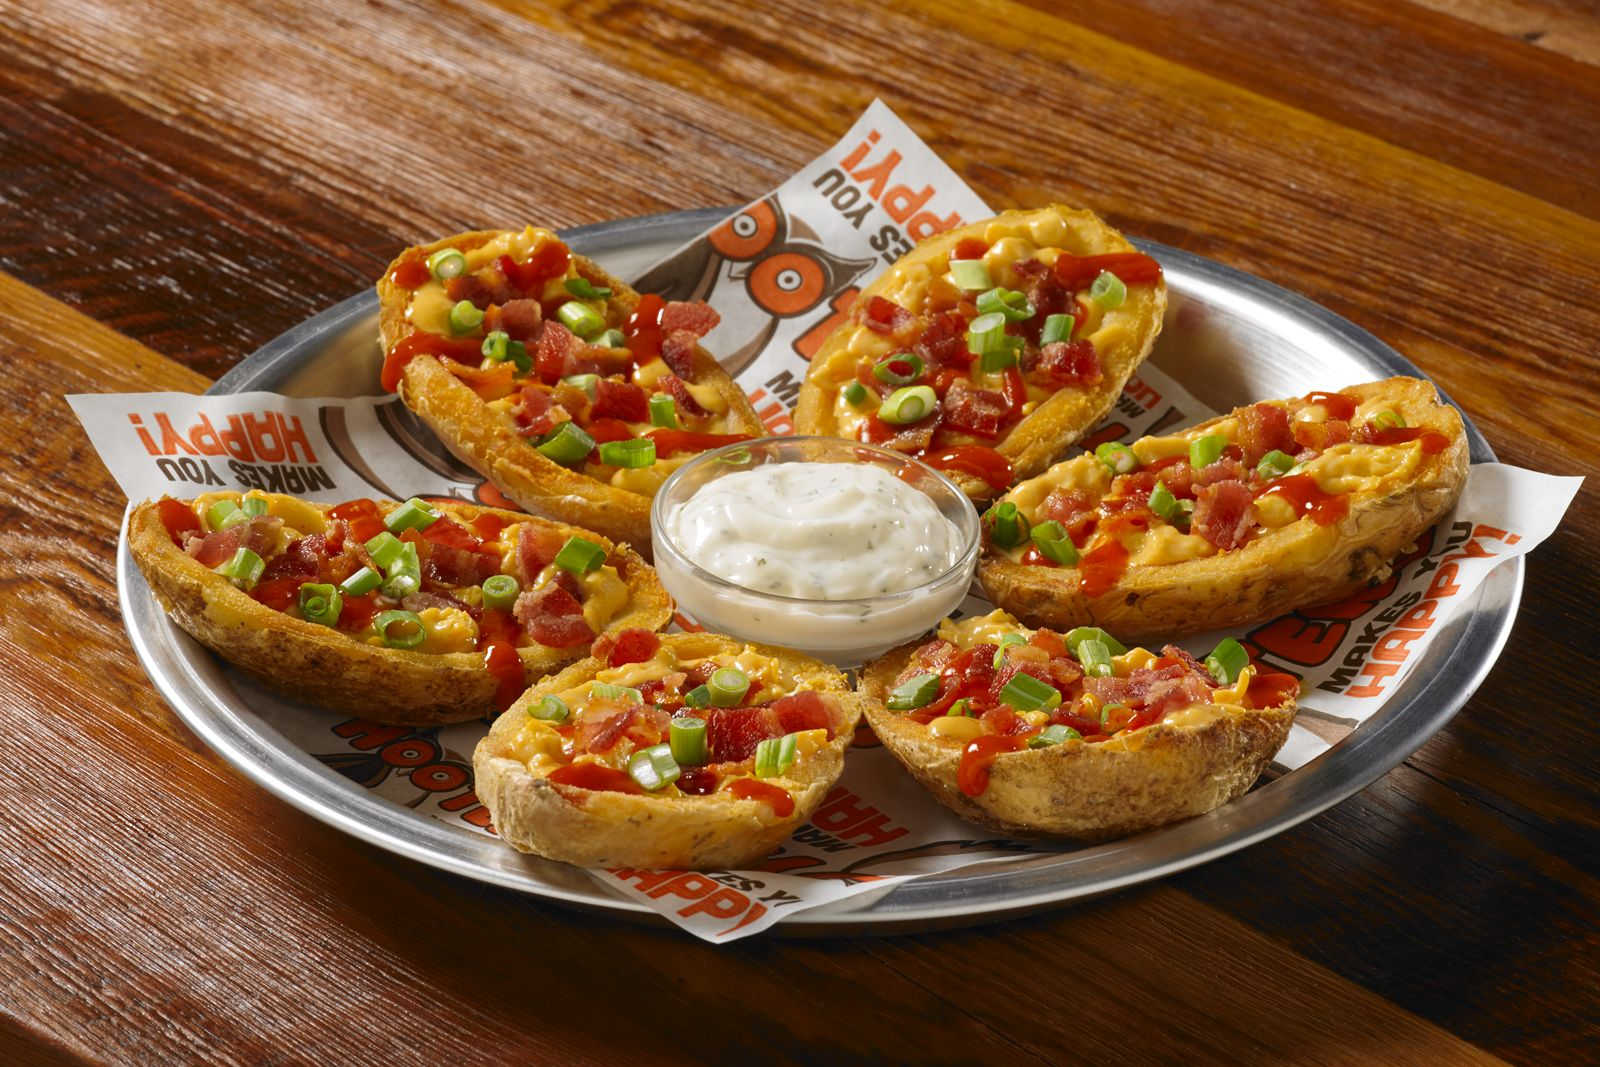 Hooters Kicks Off Football Season with New Gameday-Ready Dishes, Drinks and Prizes